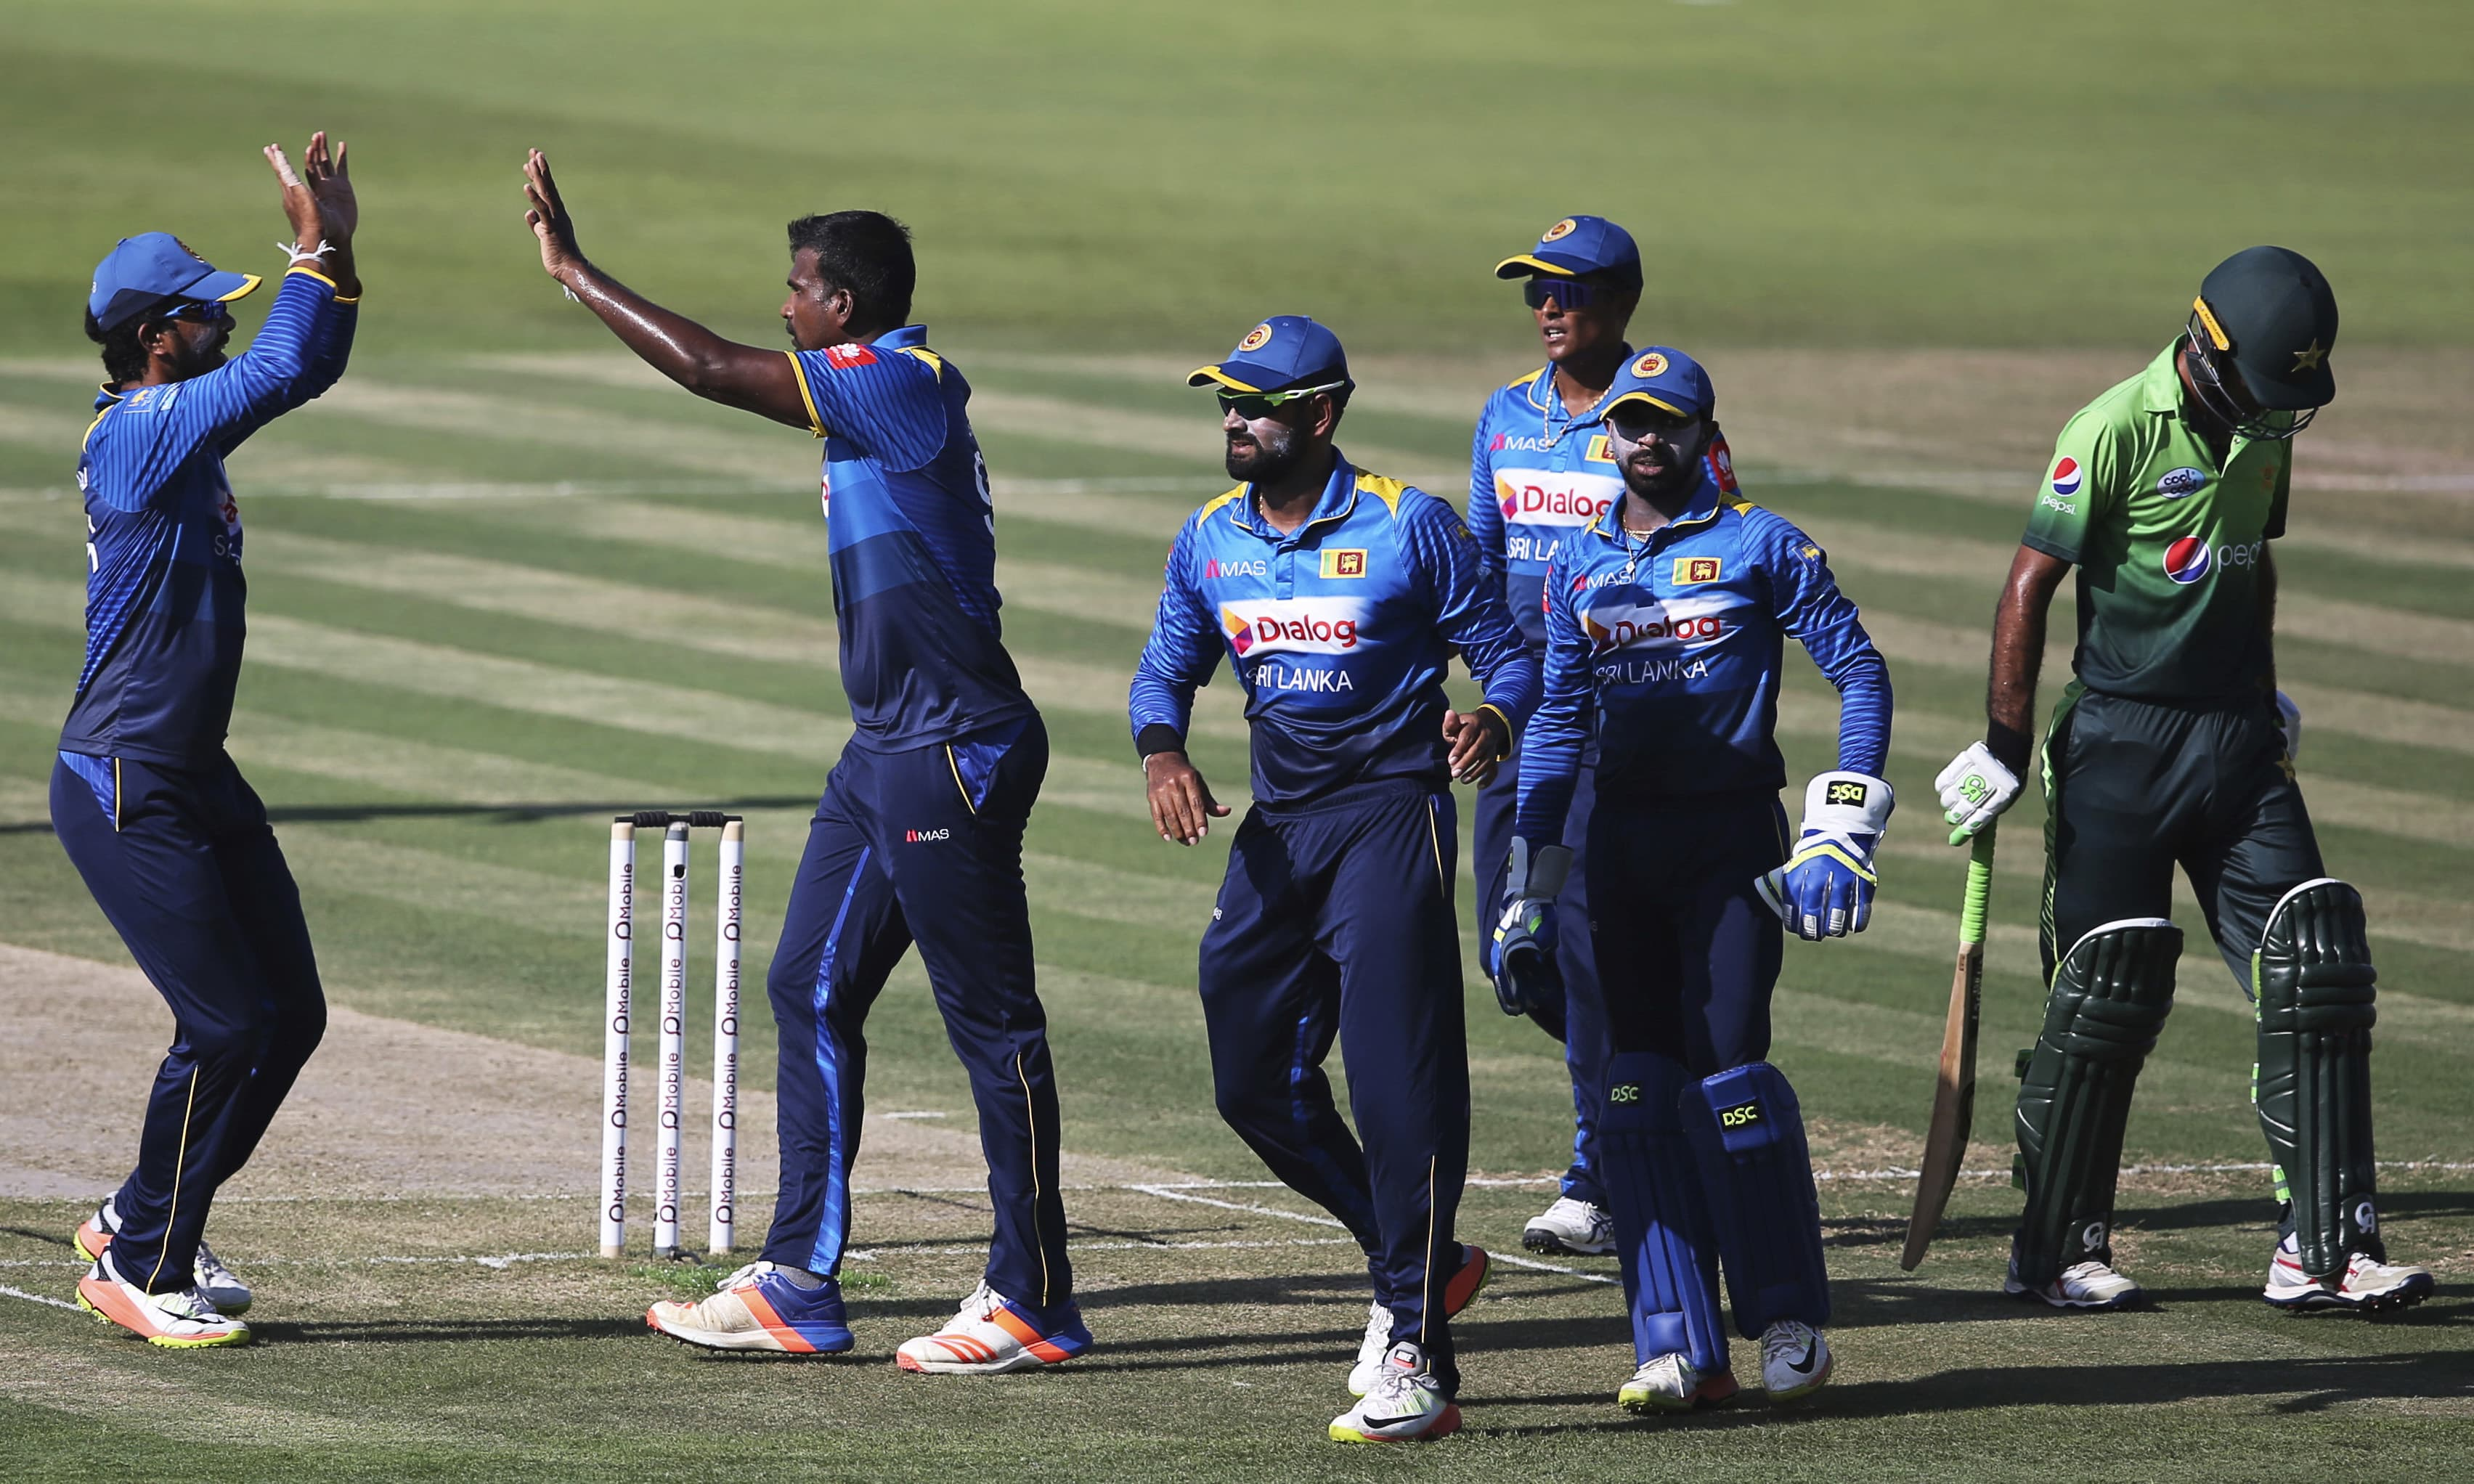 Sri Lanka's bowler Lahiru Gamage and his teammates celebrate the dismissal of Fakhar Zaman during their second ODI cricket match. —AP